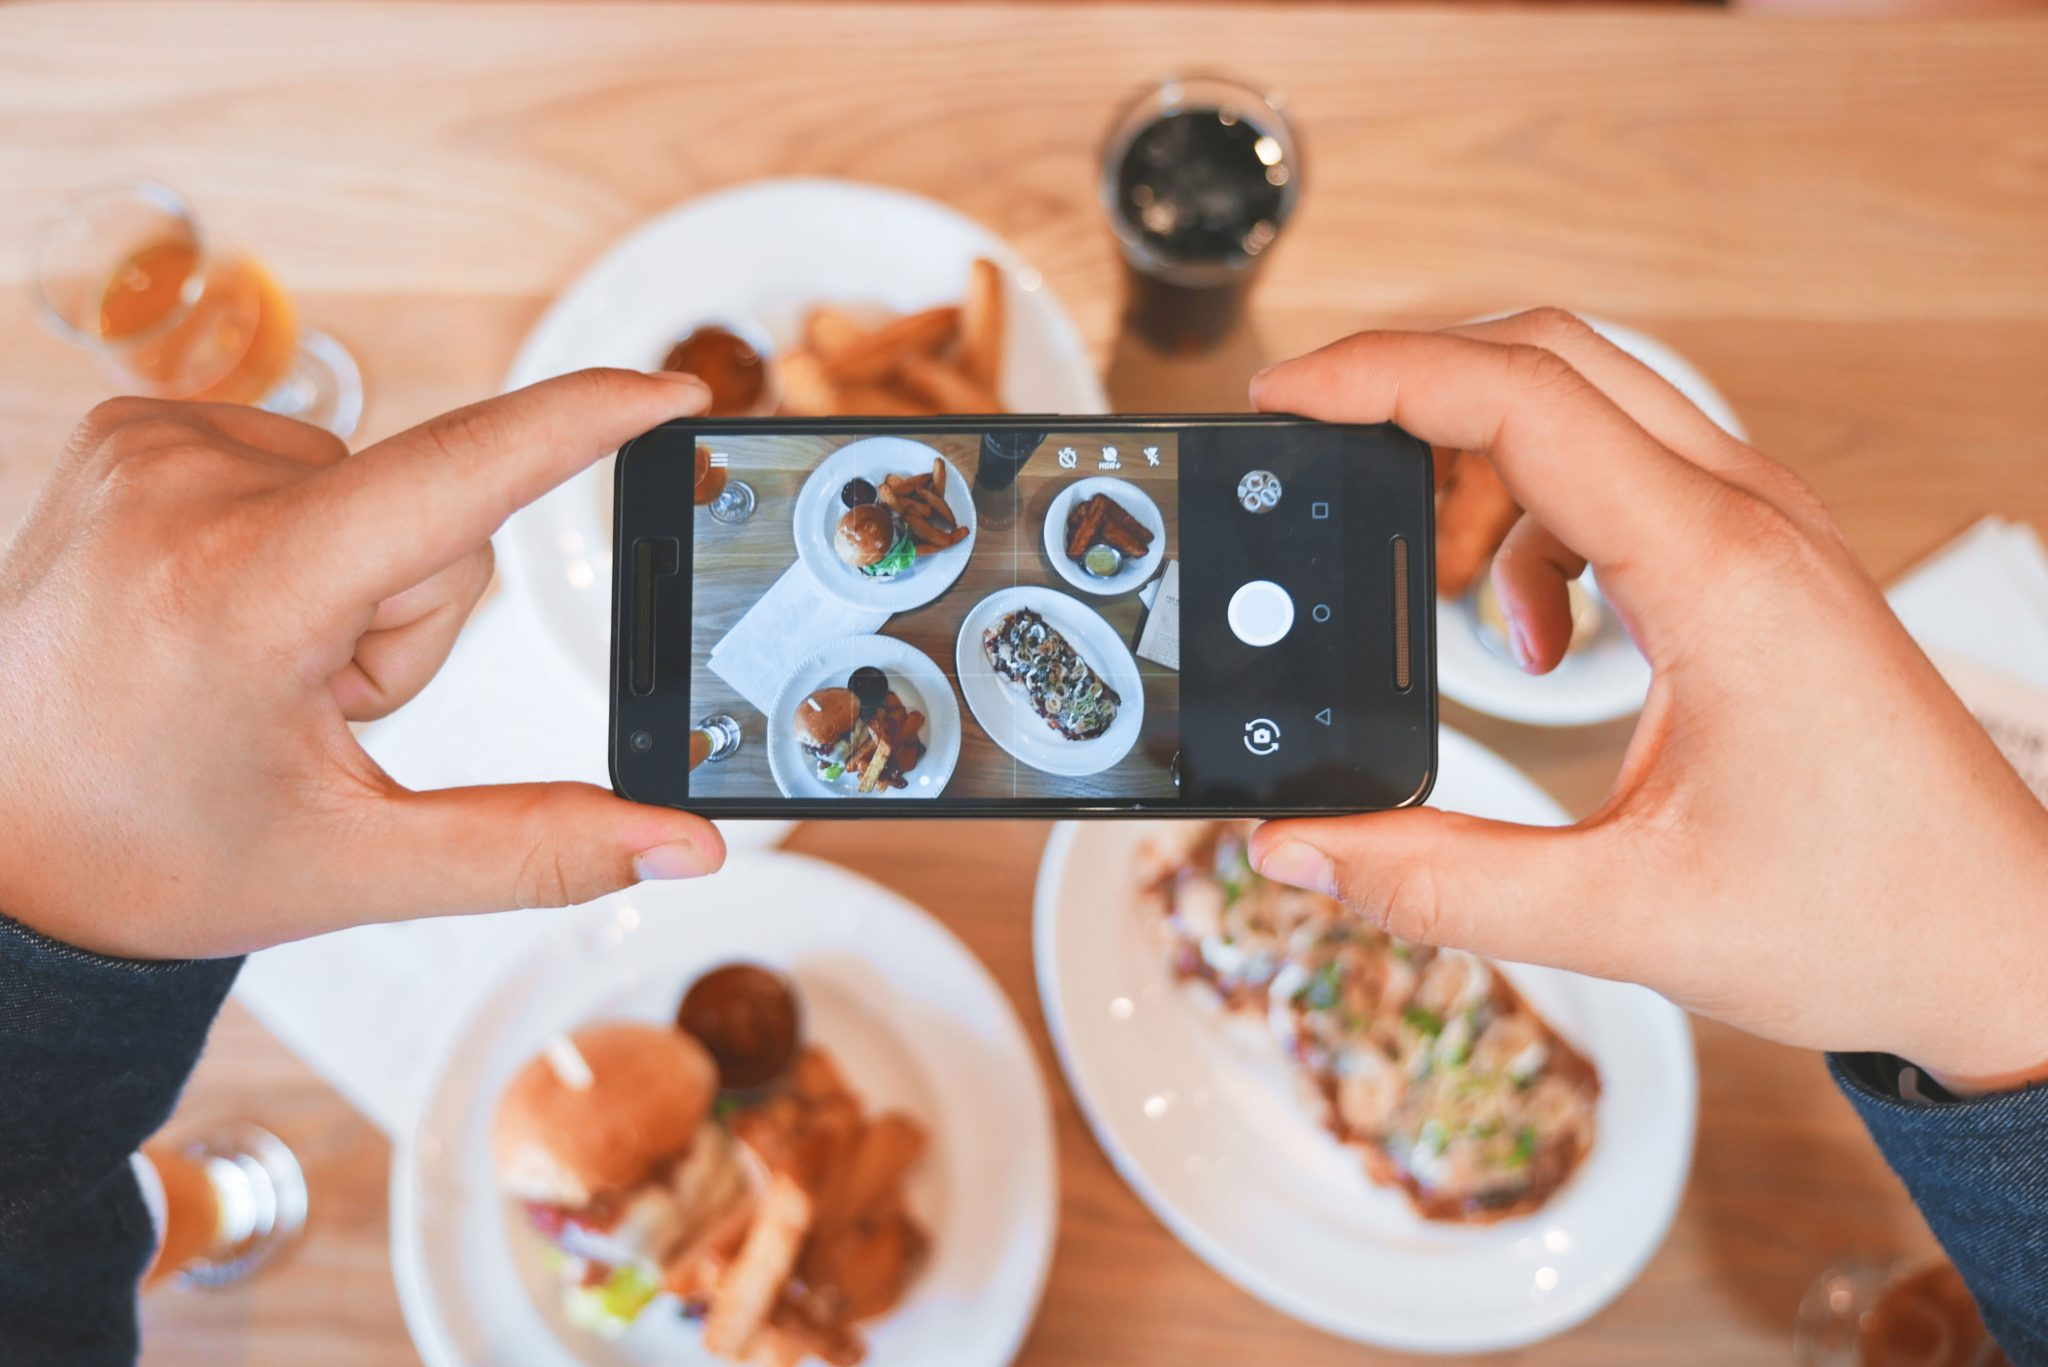 taking a photo of food with iphone